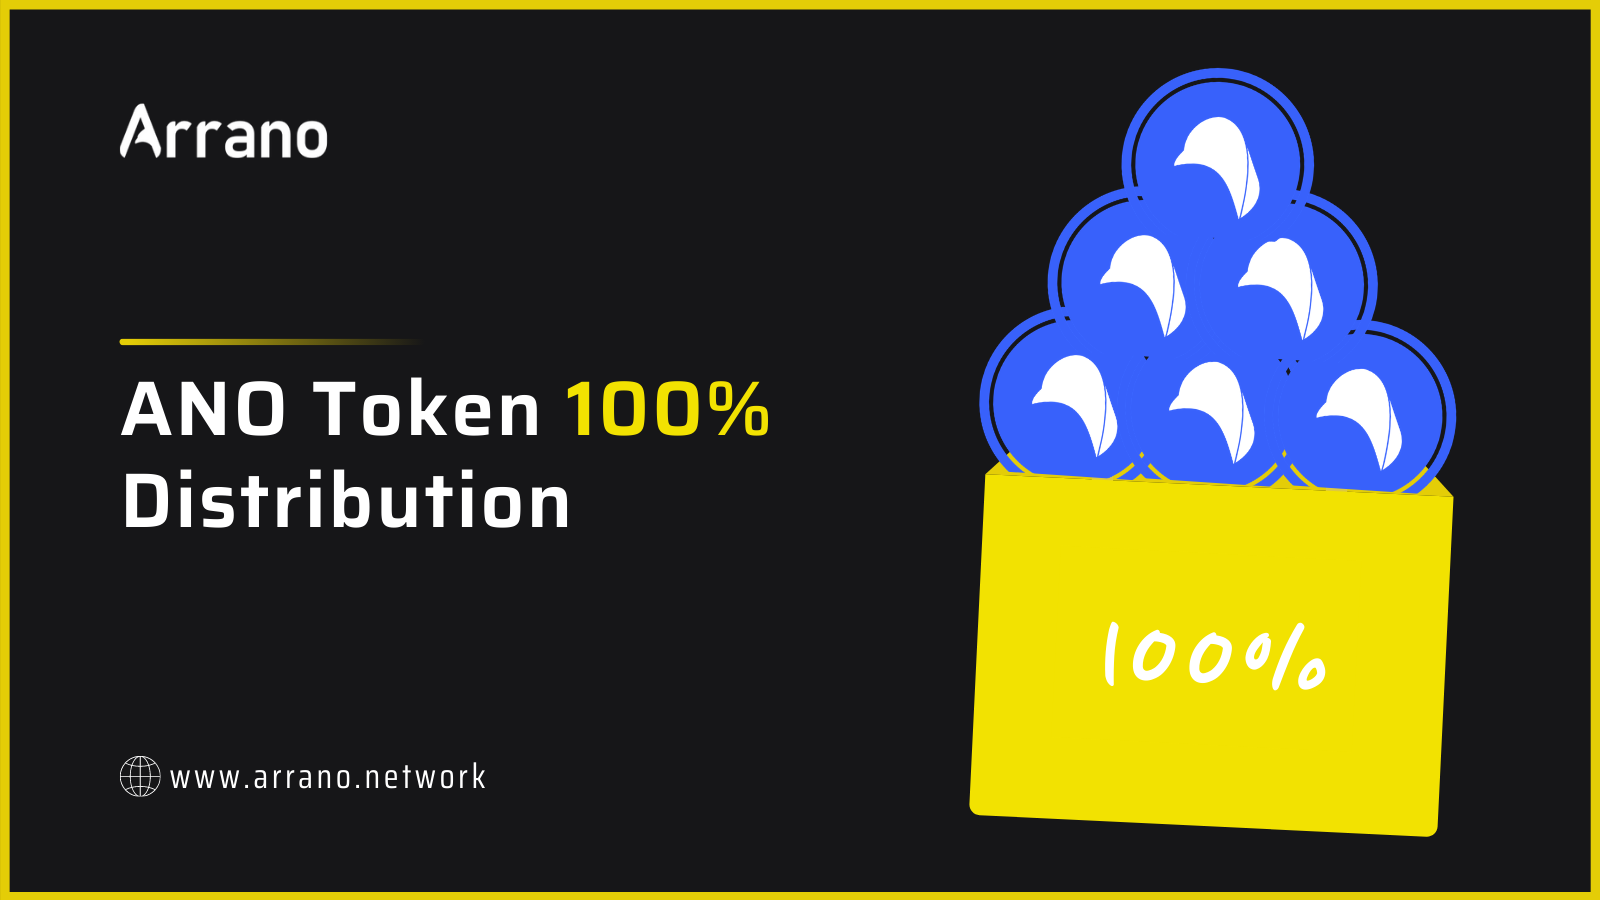 Arrano Network has reconsidered to distribution of its native token firm 5% monthly to 100% of verified funds at a time. Users can now reveiry email ands hold andx to claim the ANO tokens.